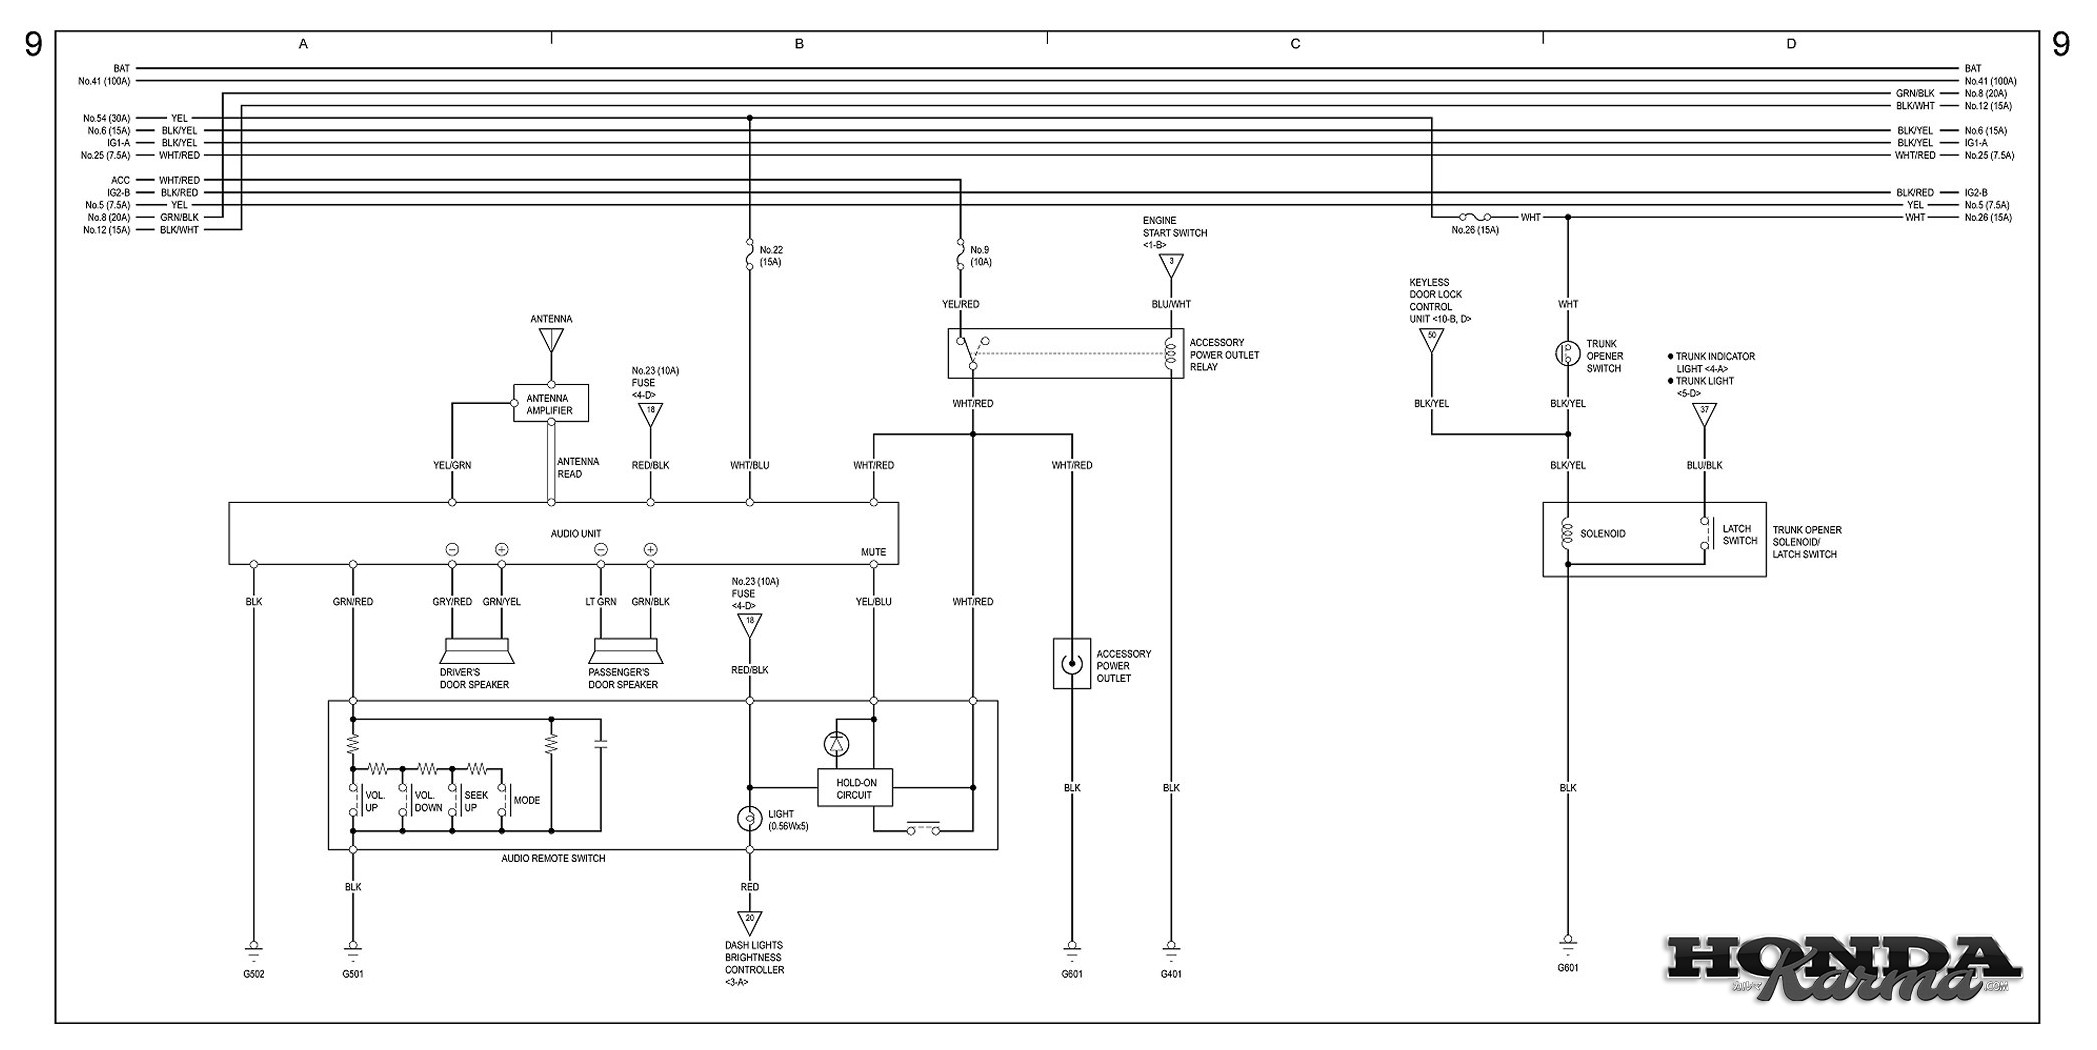 gentex 313 10 pin wiring diagram